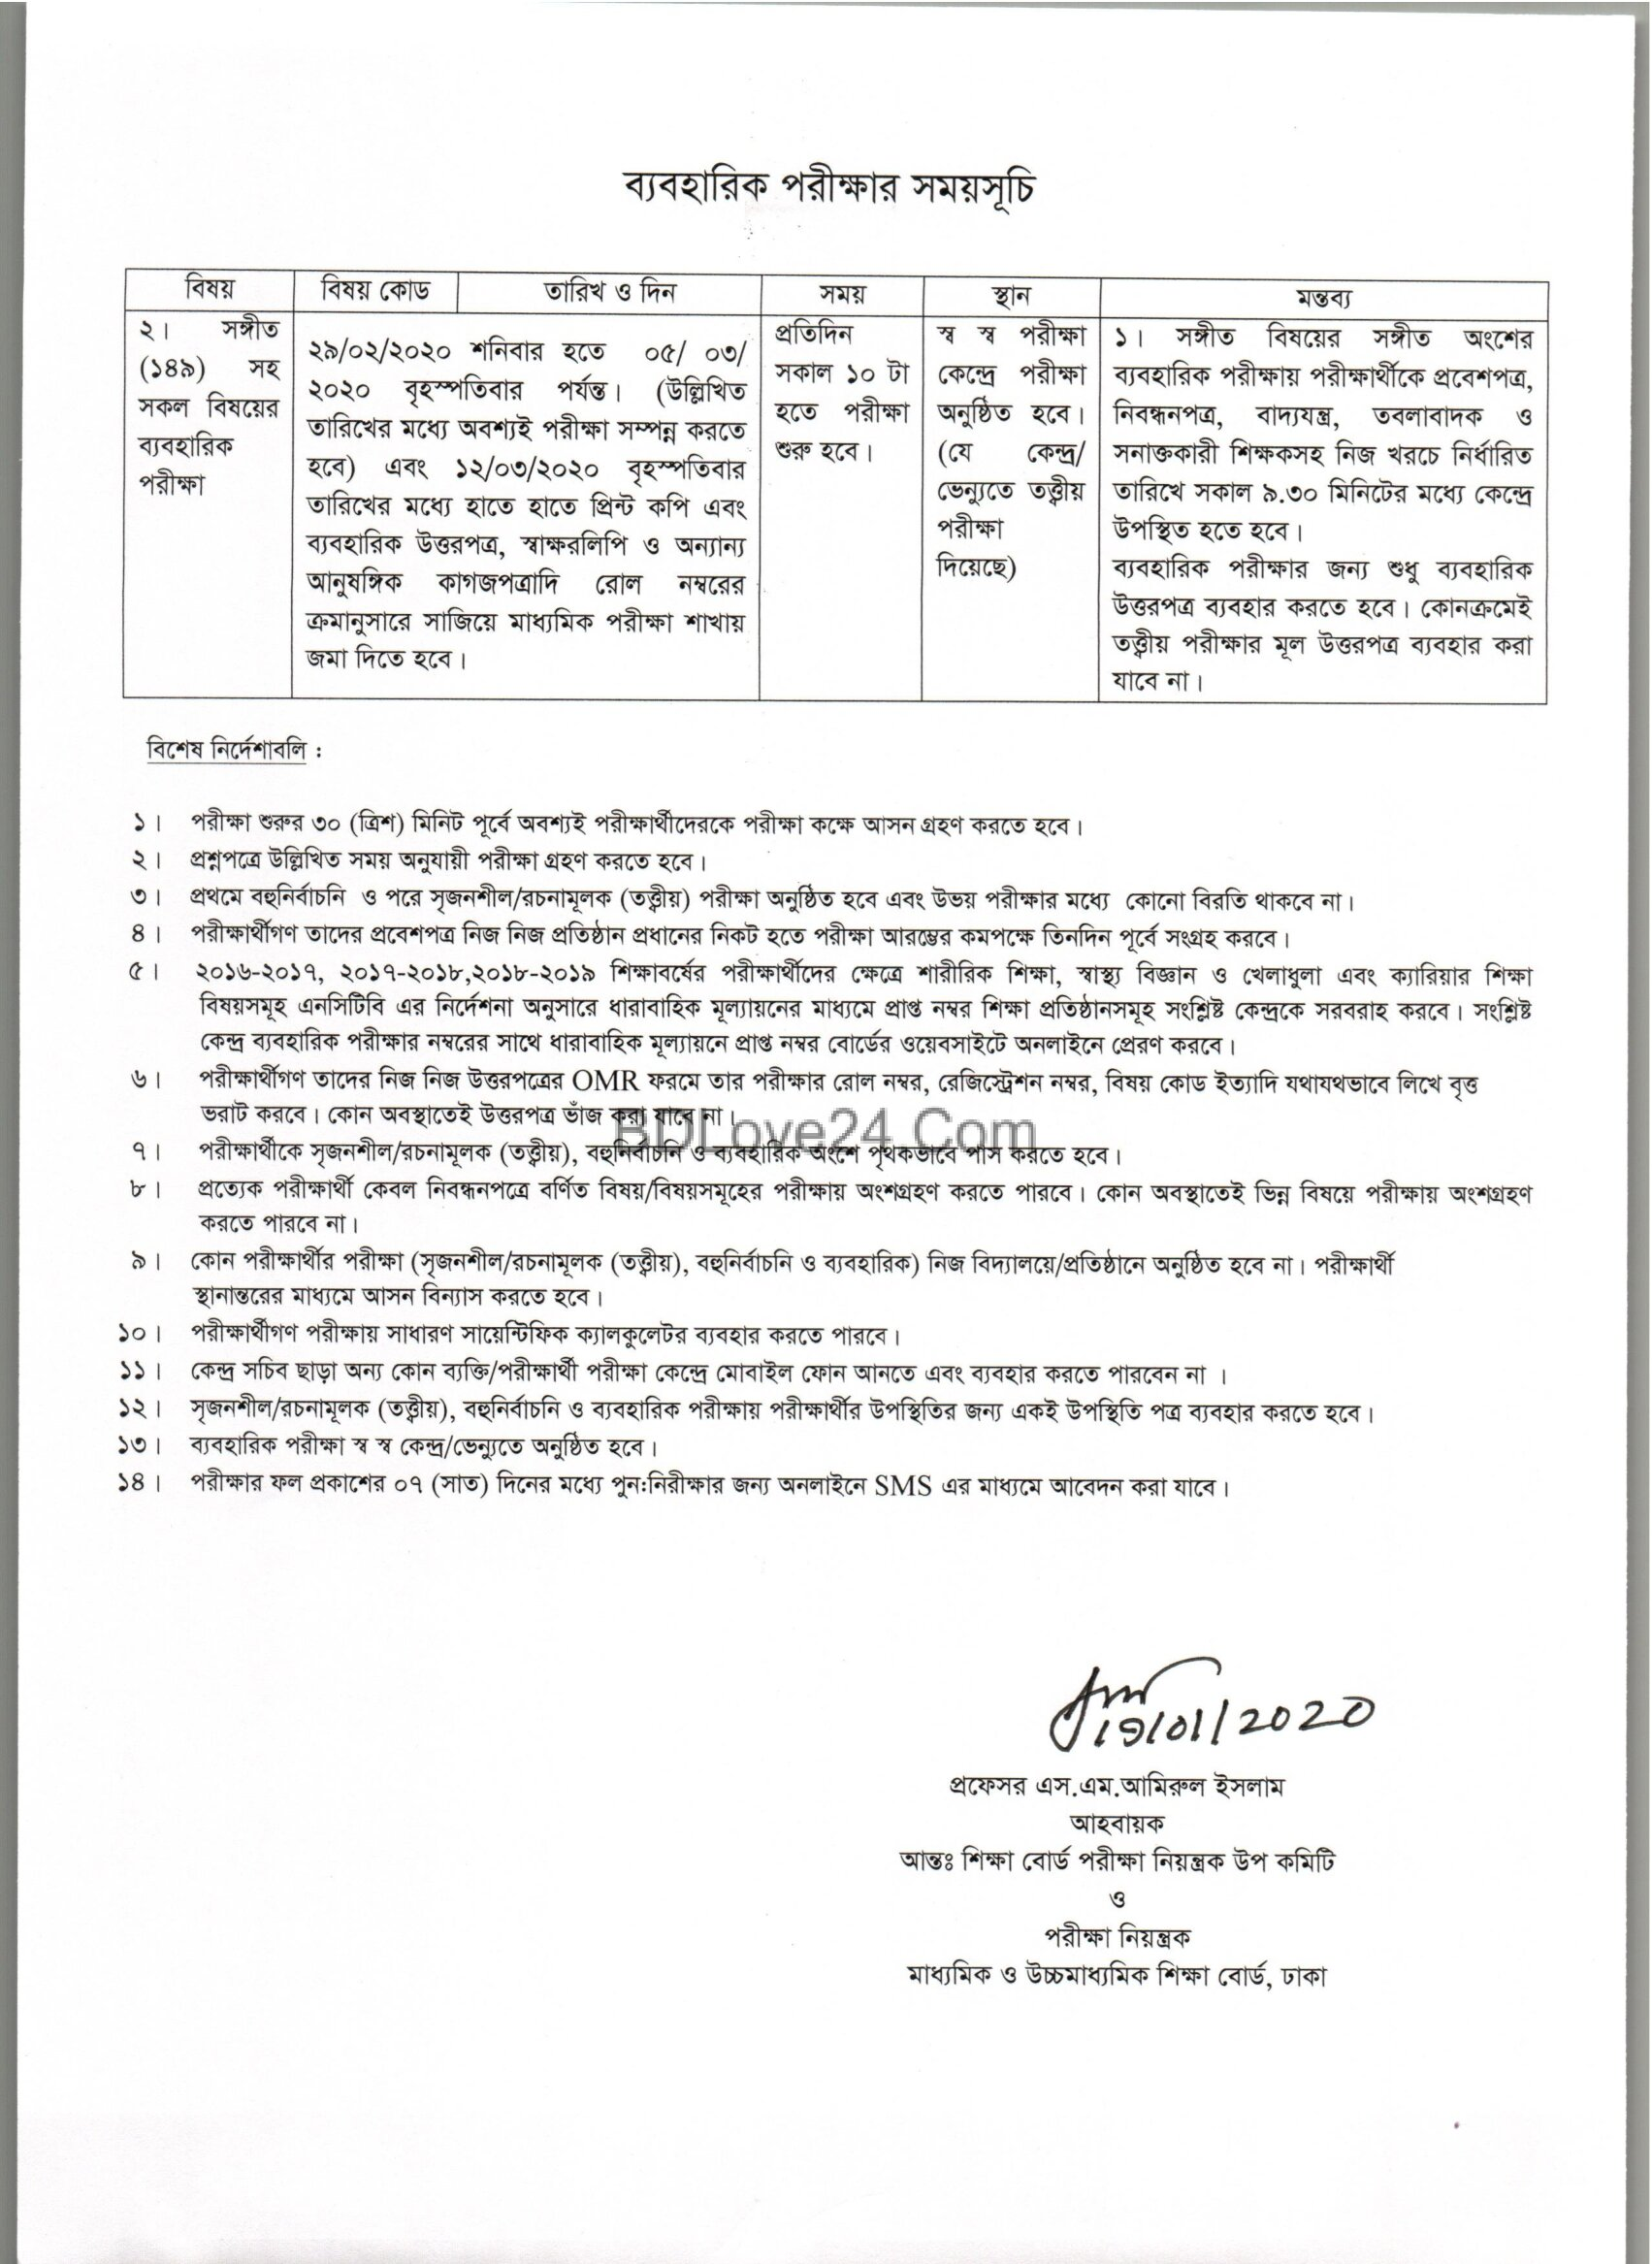 ssc rutine new 2020 0002 - SSC Exam Routine 2021 (new),Dakhil Exam Time Table 2021,SSC and Dakhil (New Routine)